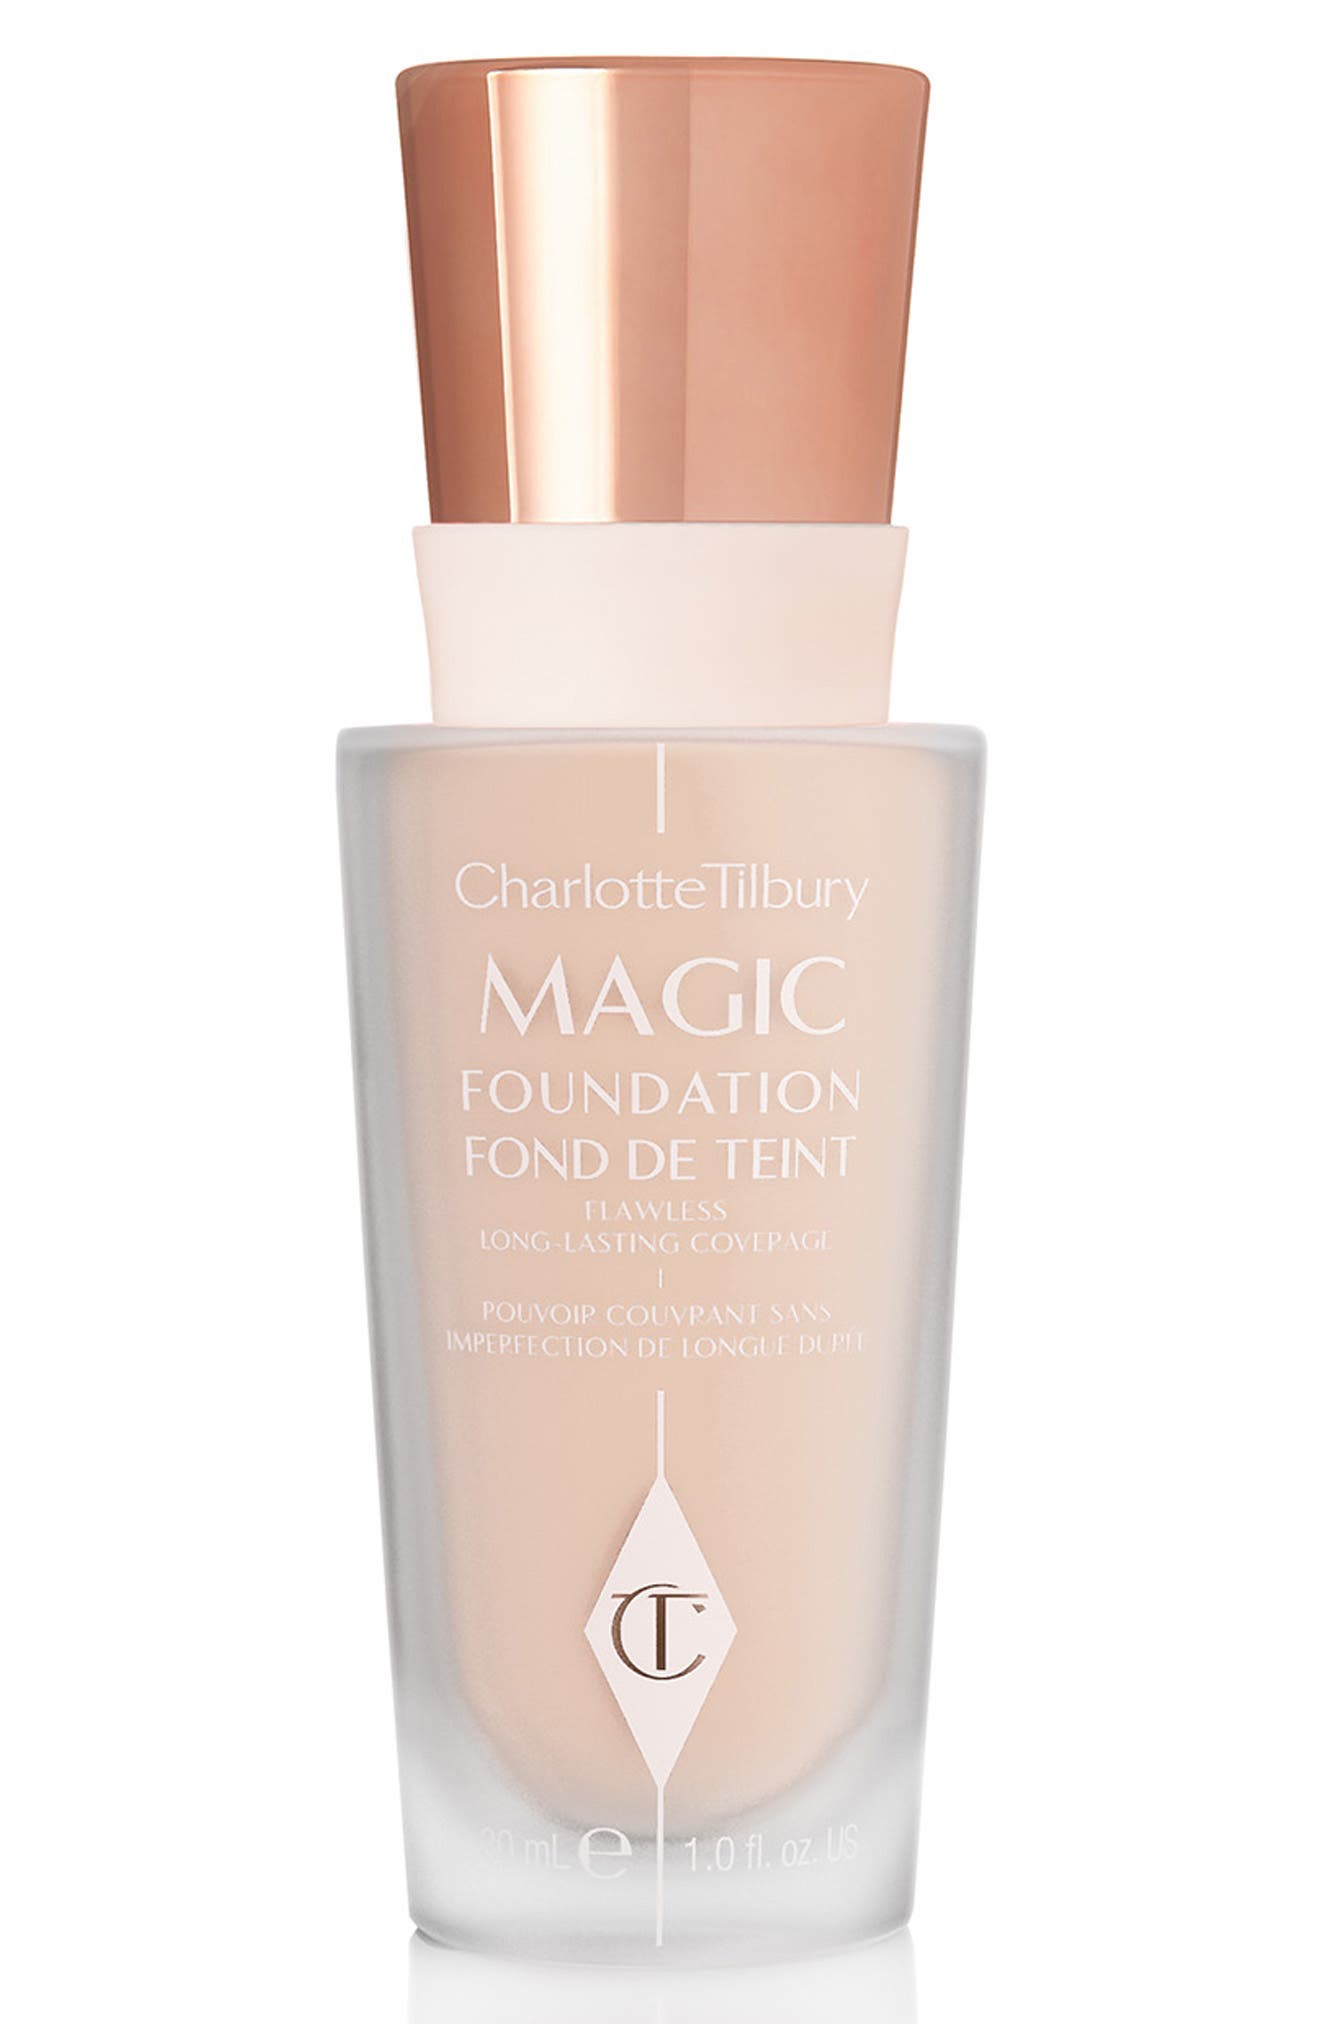 CHARLOTTE TILBURY MAGIC FOUNDATION BROAD SPECTRUM SPF 15 - 3 FAIR